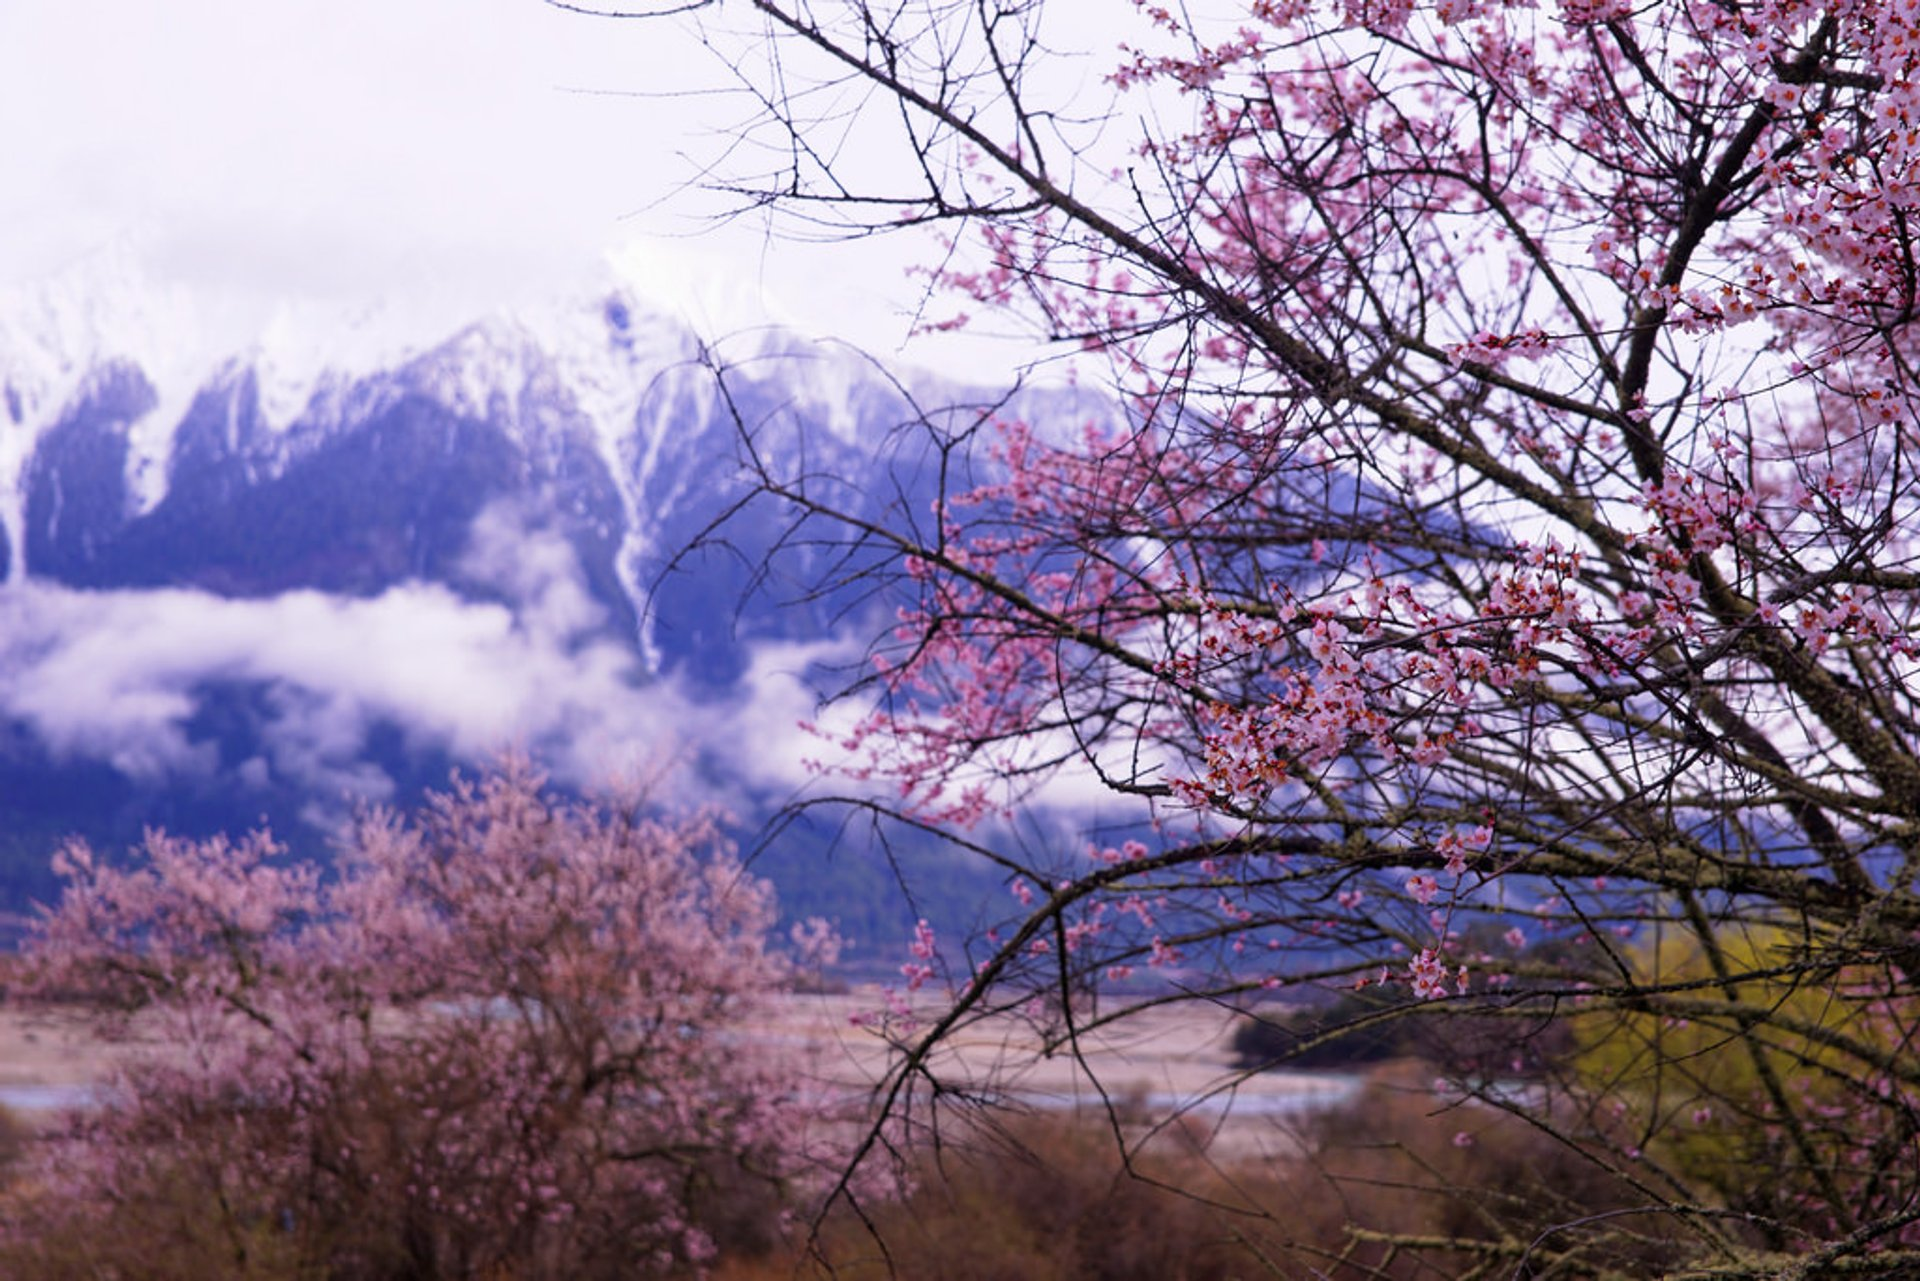 Peach Blossom in Tibet 2019 - Best Time